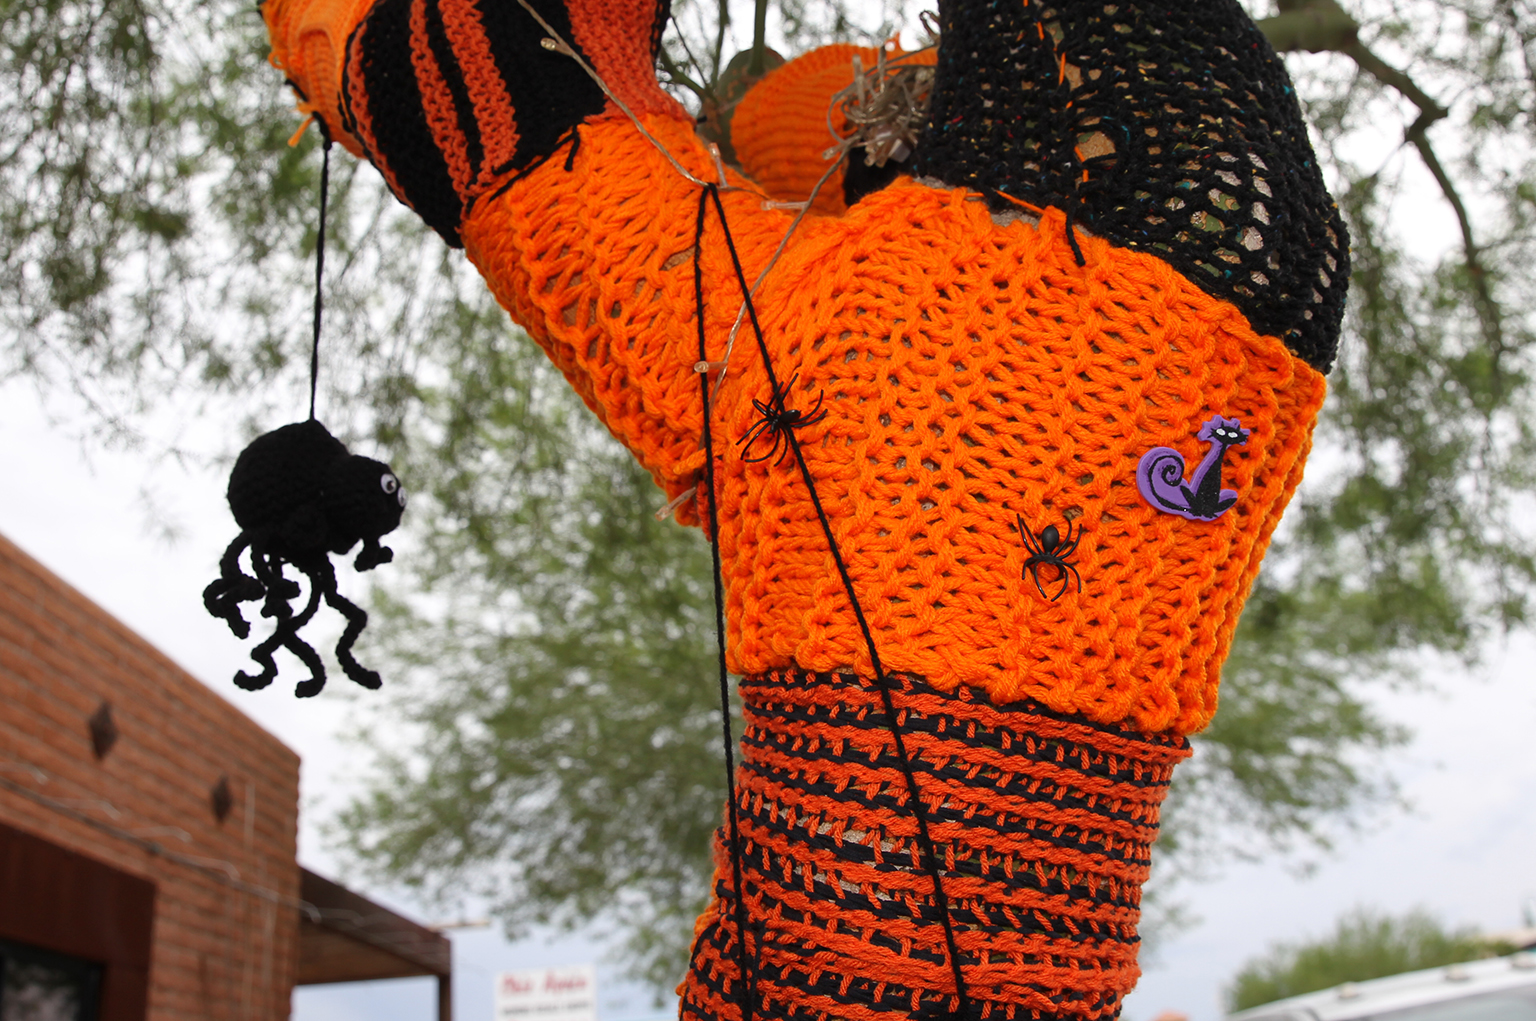 Knotty Knitters Decorate Trees On McCulloch